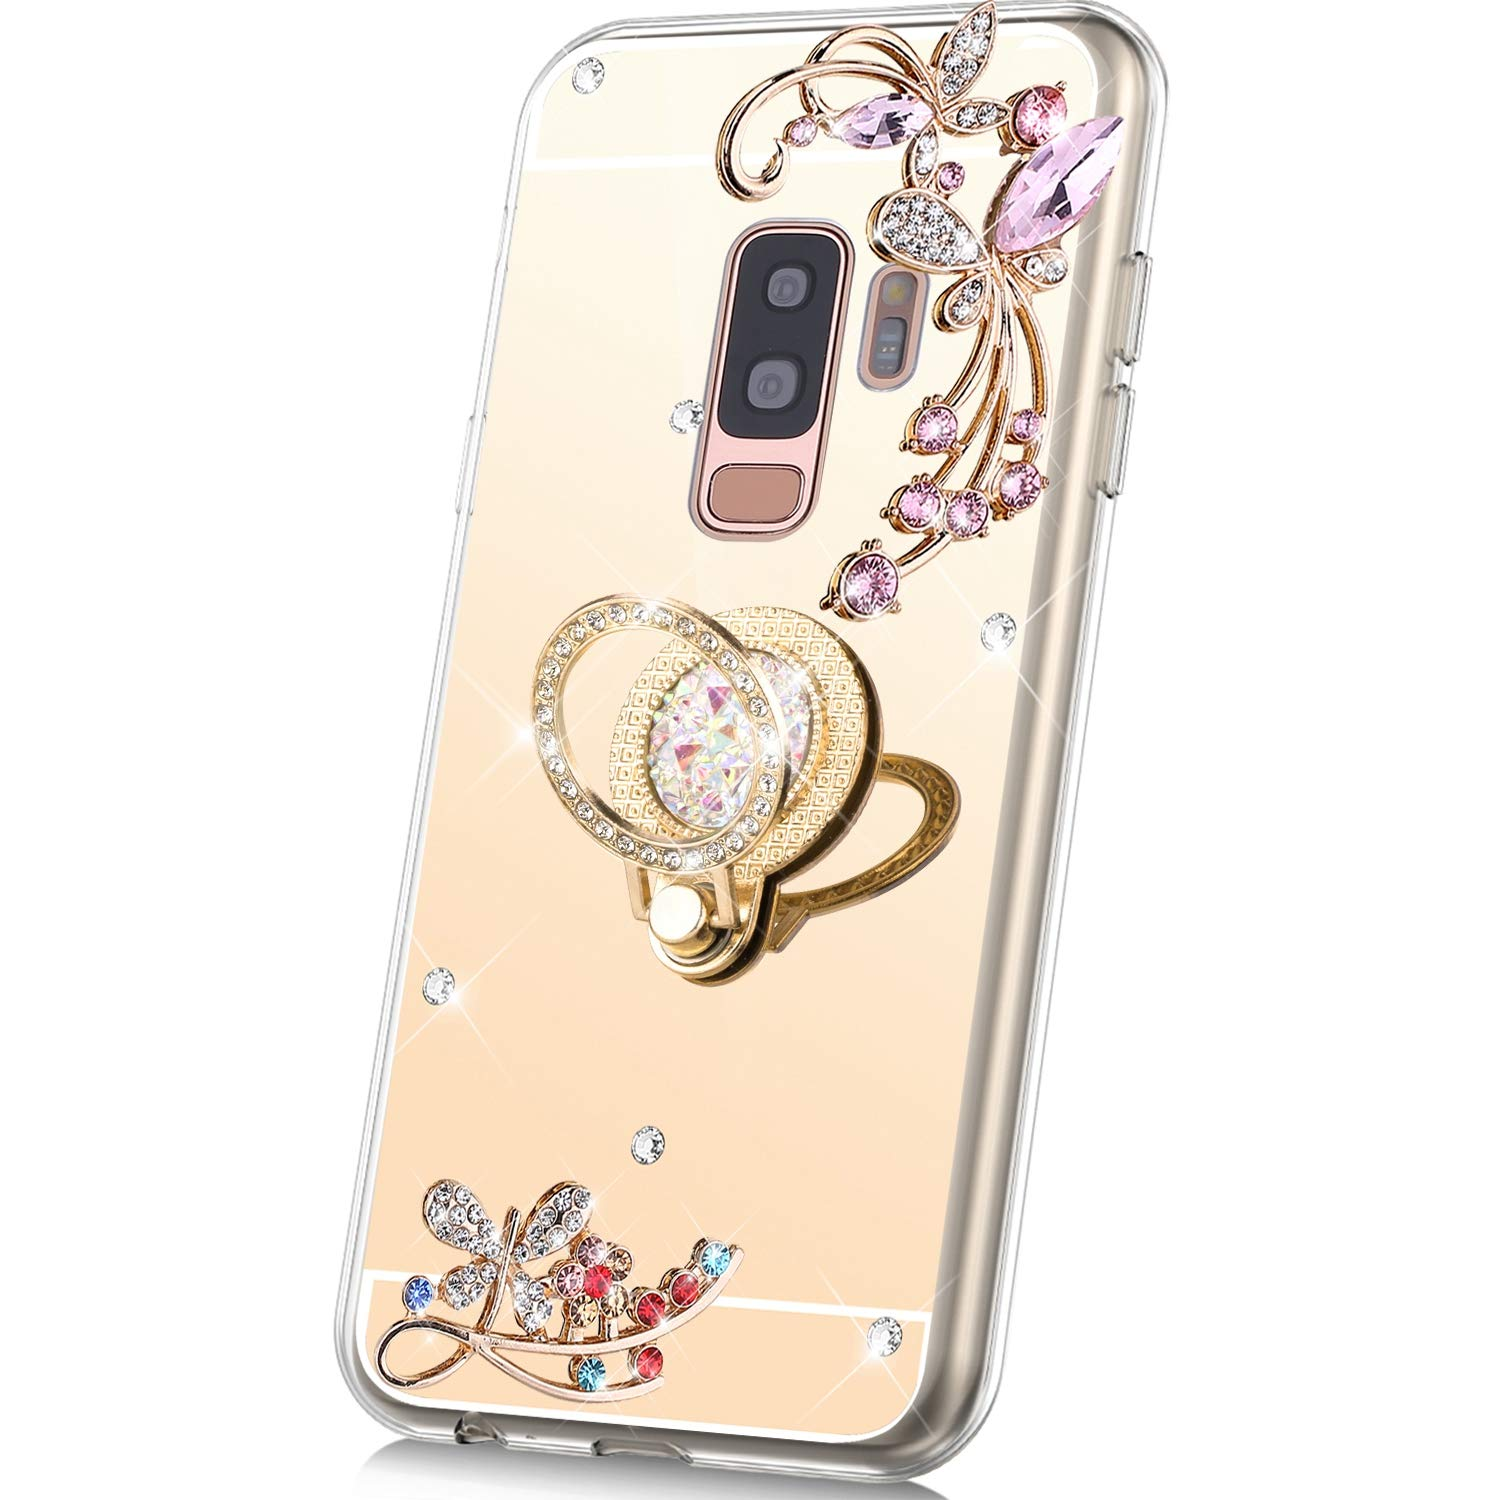 PHEZEN Case for Samsung Galaxy S9 Plus Mirror Case,Bling Glitter Flowers Sparkle Rhinestone Mirror Back TPU Silicone Case Cover with Ring Kickstand Diamond Crystal Case for Galaxy S9 Plus,Gold by PHEZEN